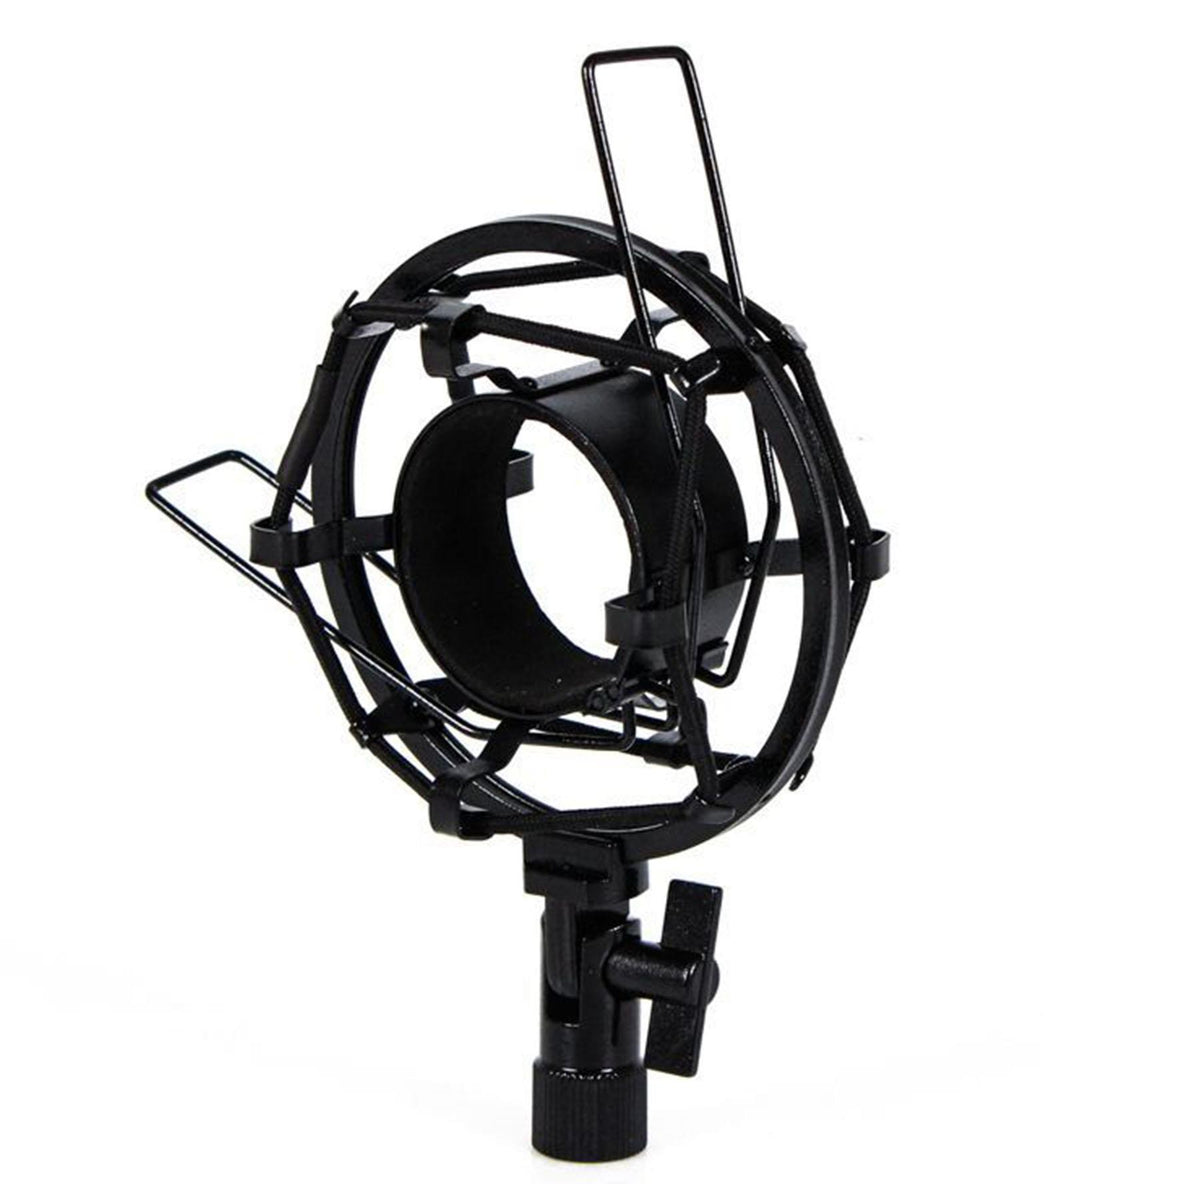 Black Shock Mount for Audix D6 Microphone